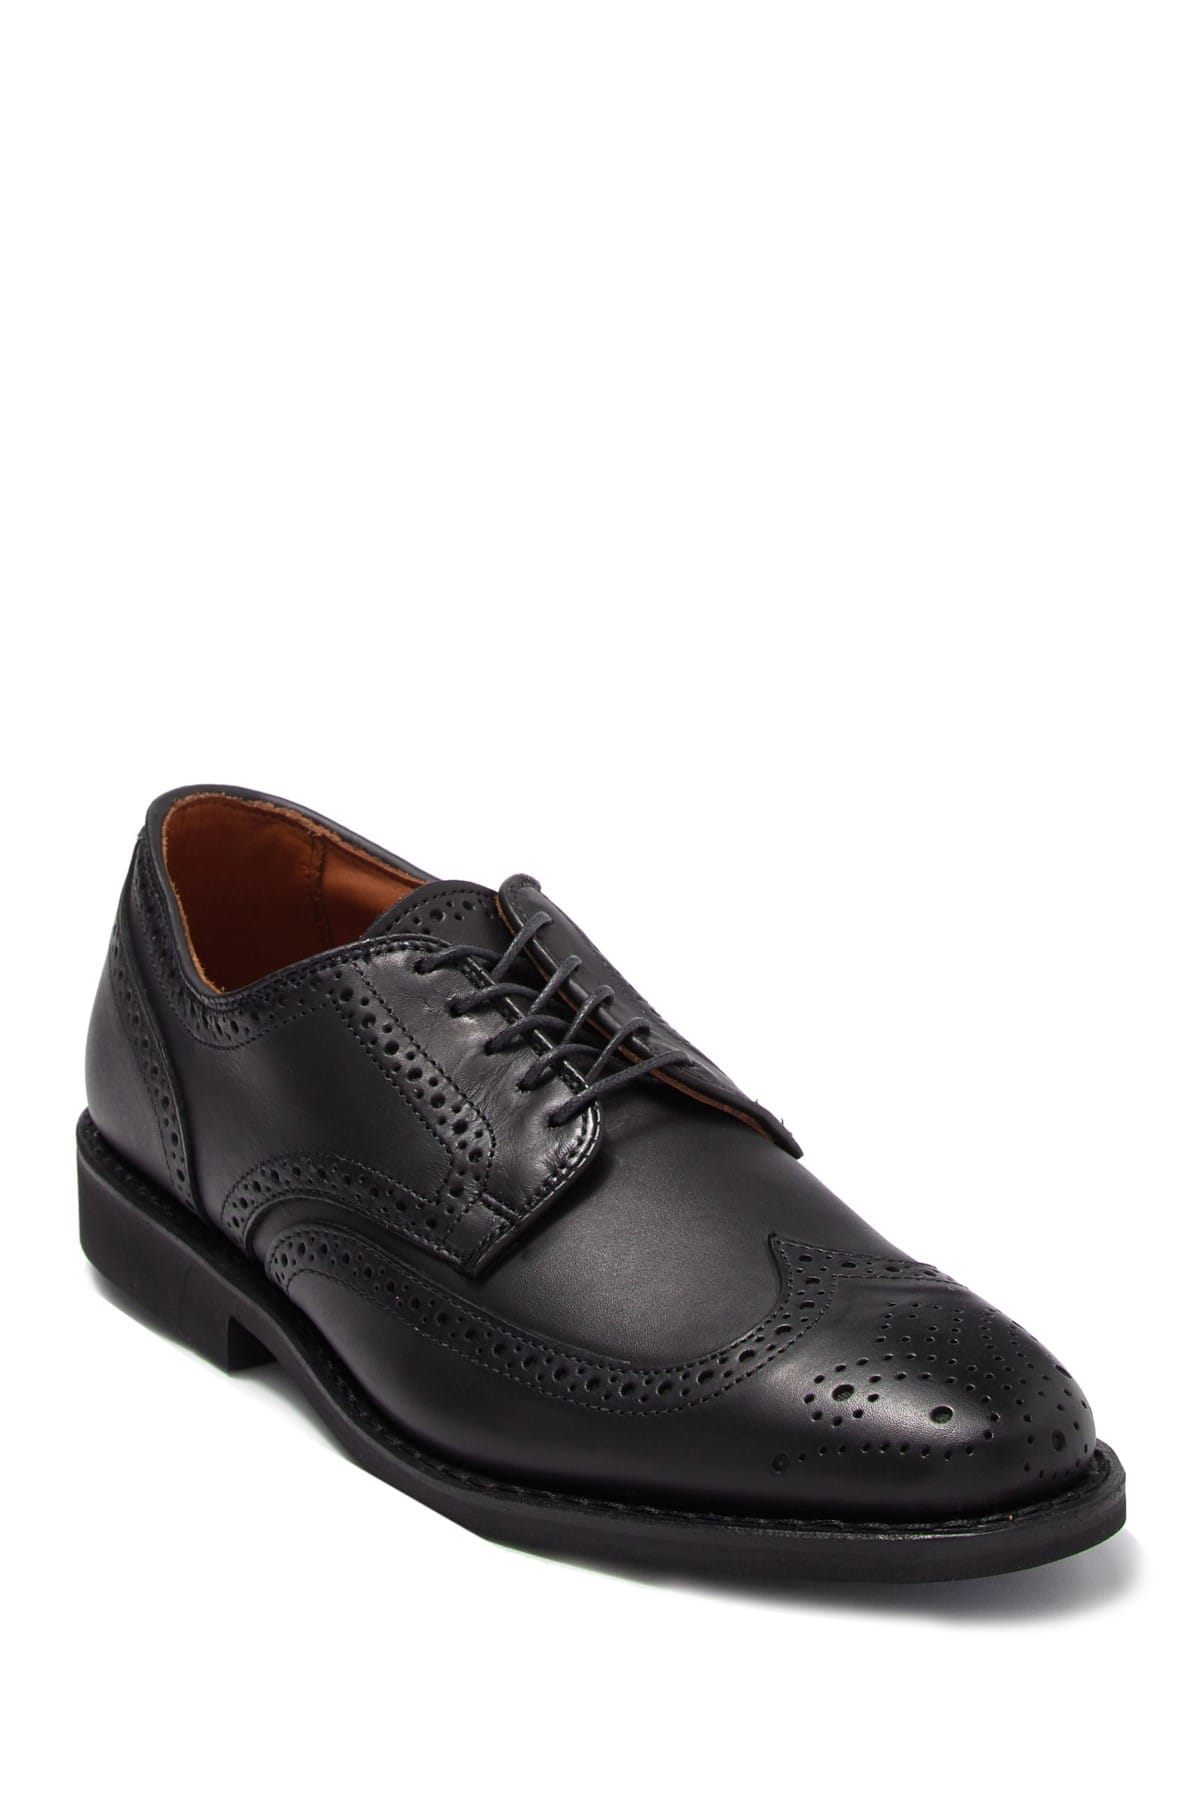 Nordstrom Rack: Extra 40% Off Select Men's Shoes and Apparel: Allen Edmonds Clyde Hill Leather Wingtip Derby (black) $85.49 & More + Free S/H